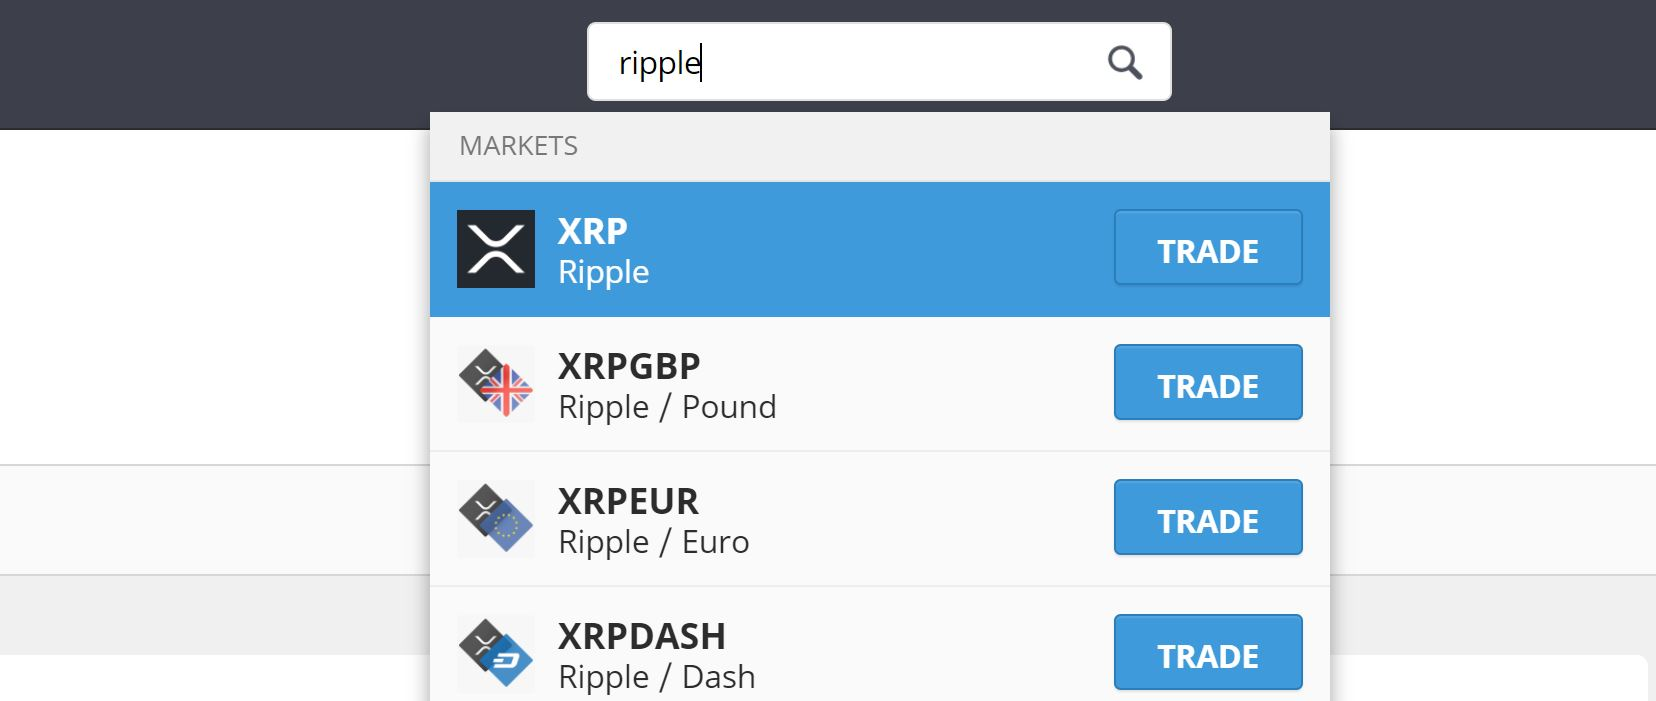 Search Ripple on eToro